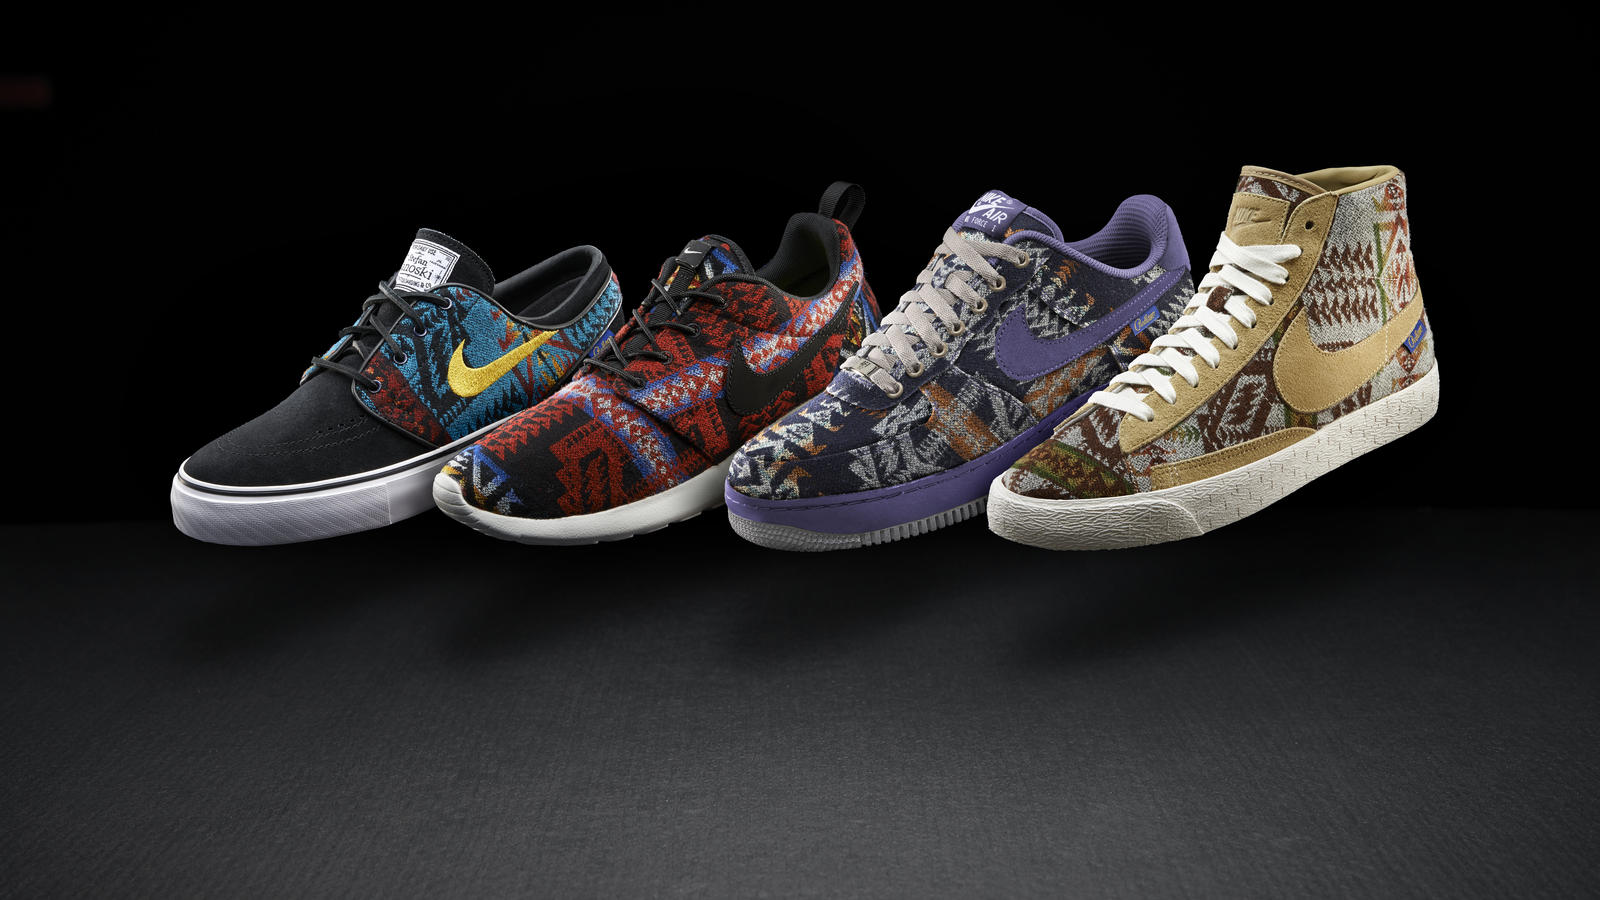 meet 6ad01 d7082 shopping pendleton nike roshe run premium id mens shoe 87be5 36f00   wholesale nike and pendleton woolen mills two icons of pacific northwest  design combine ...